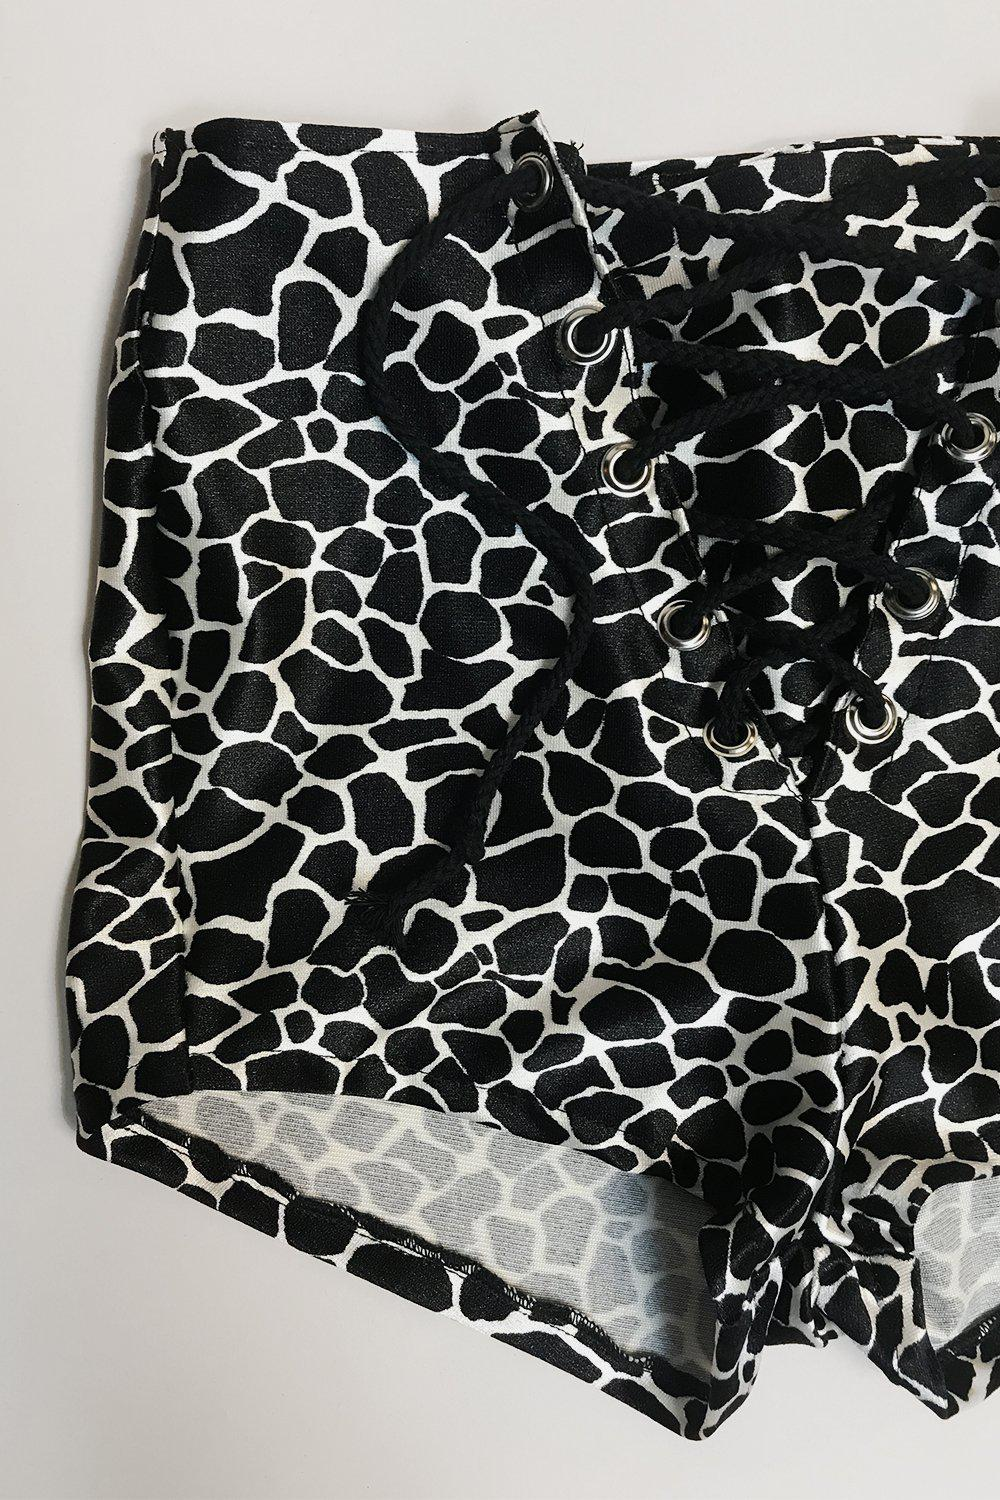 Wild Animal Nylon Spandex Grommet Shorts